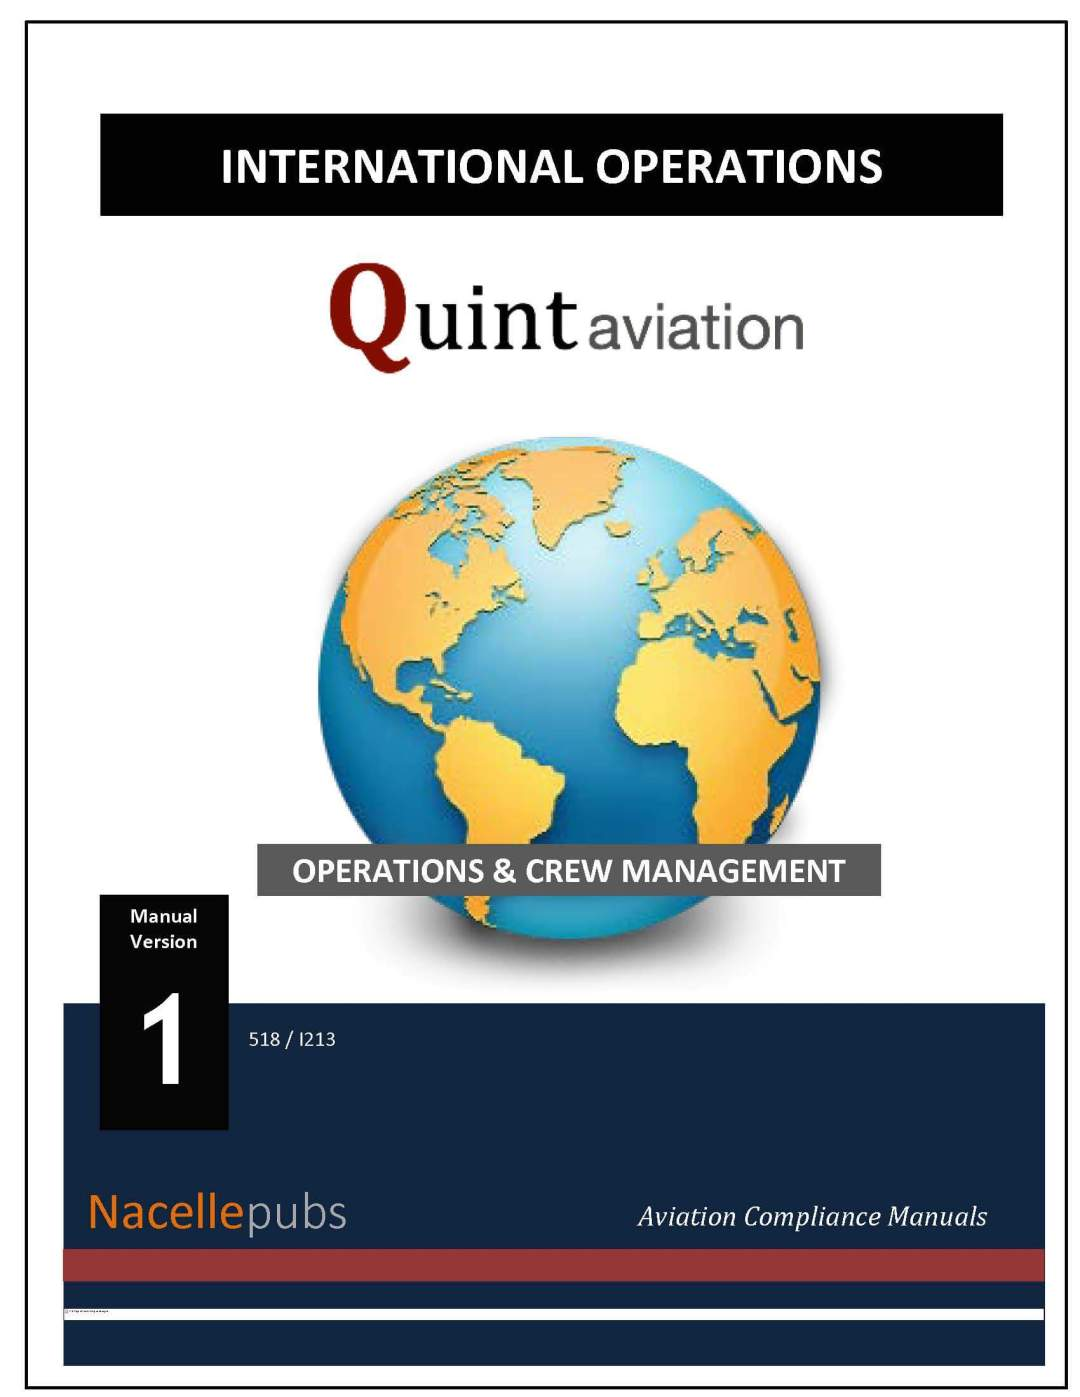 FAA ICAO International Operations Manual - MNPS